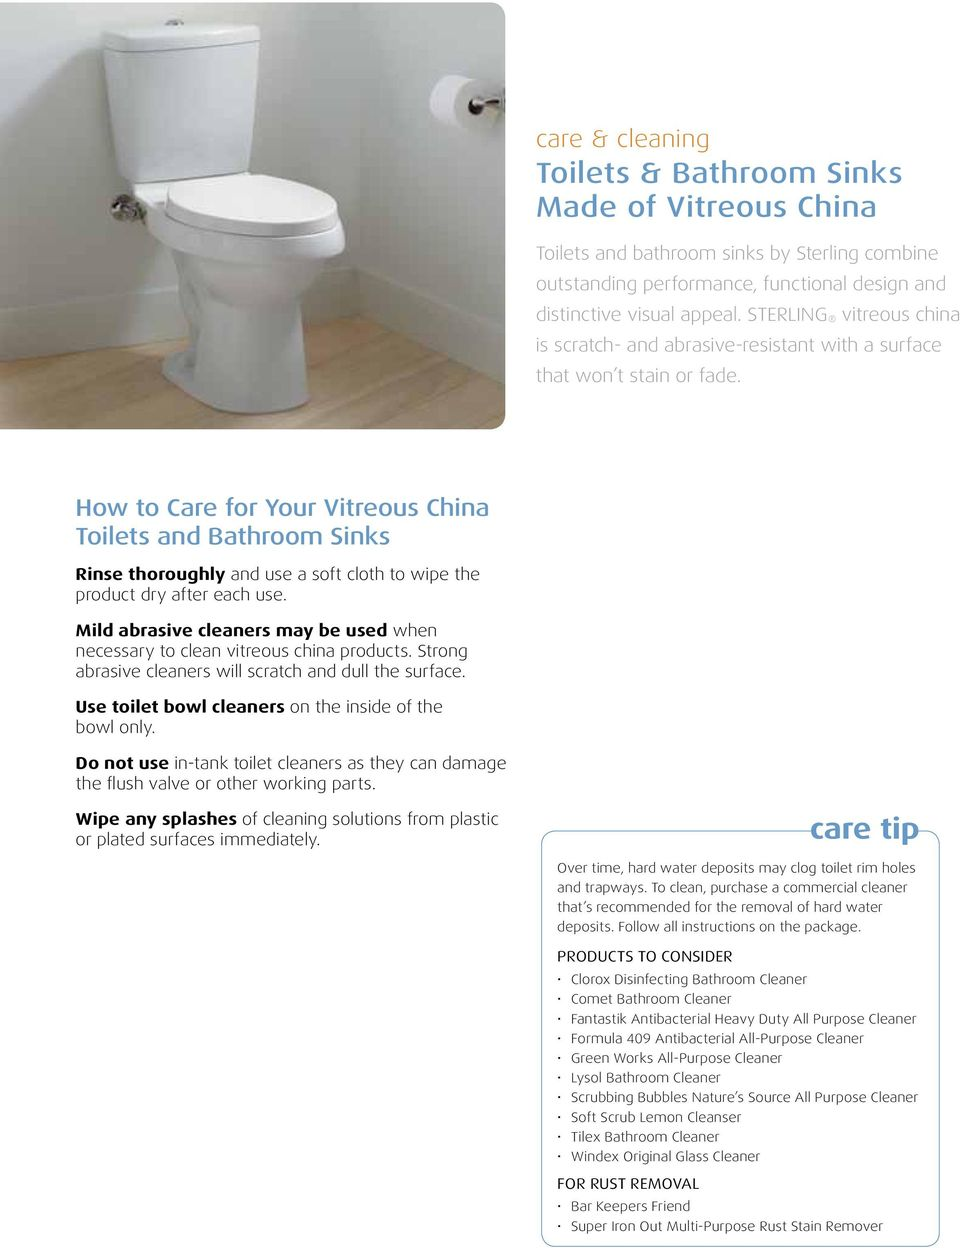 How to Care for Your Vitreous China Toilets and Bathroom Sinks Rinse thoroughly and use a soft cloth to wipe the product dry after each use.